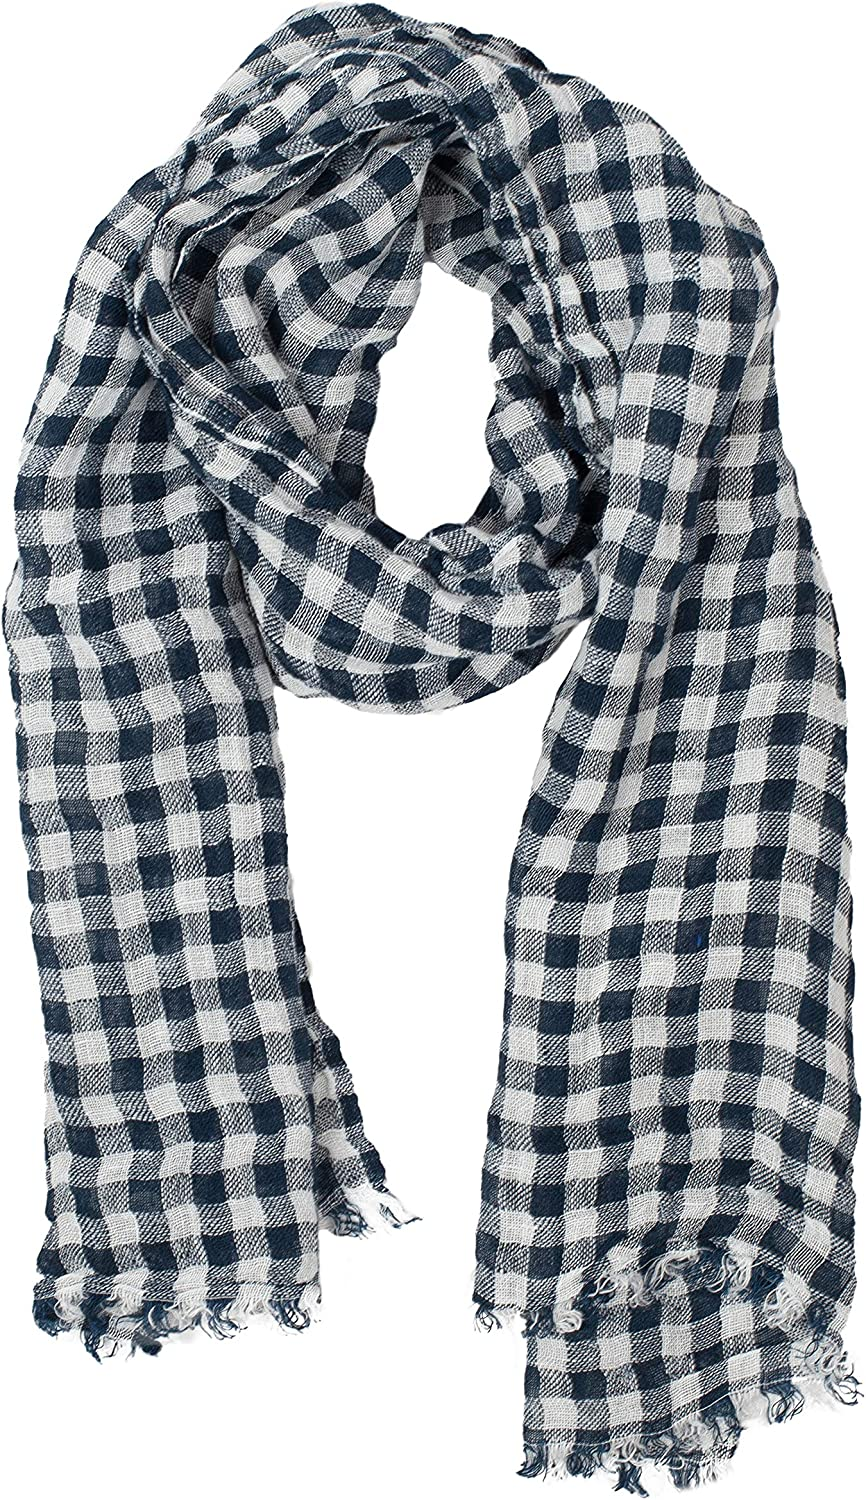 Checked Scarf   Navy bluee & White   100% Linem   Scarves For Women   Mens Scarf